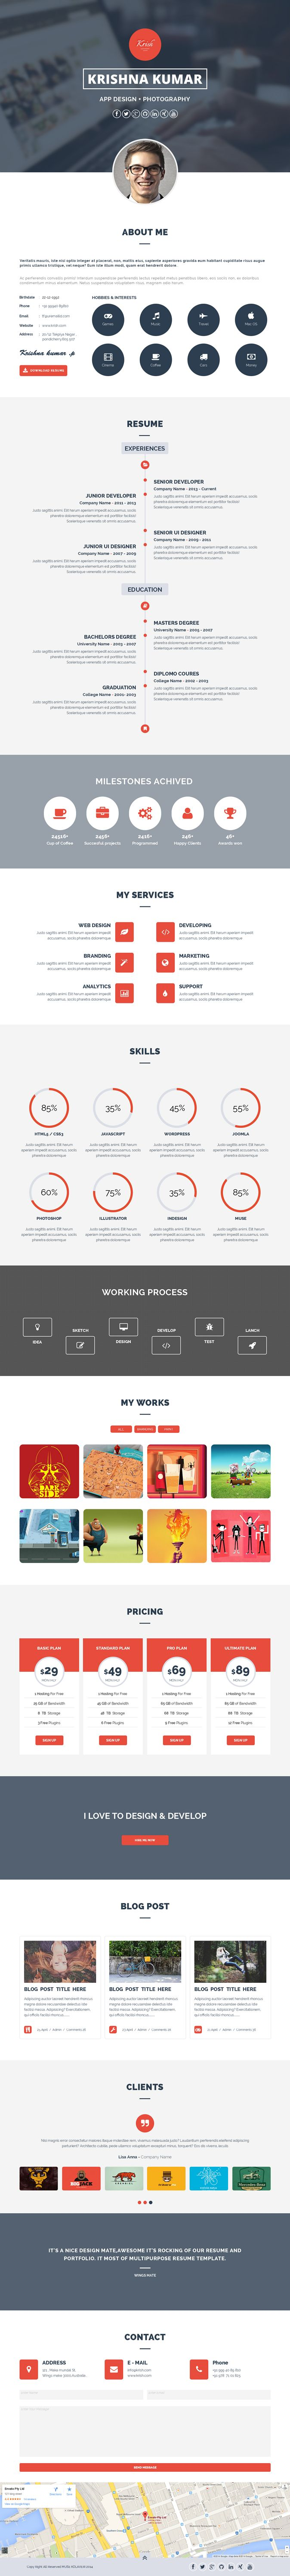 86 Best Inspiring Visual Cvs Resumes Images On Pinterest